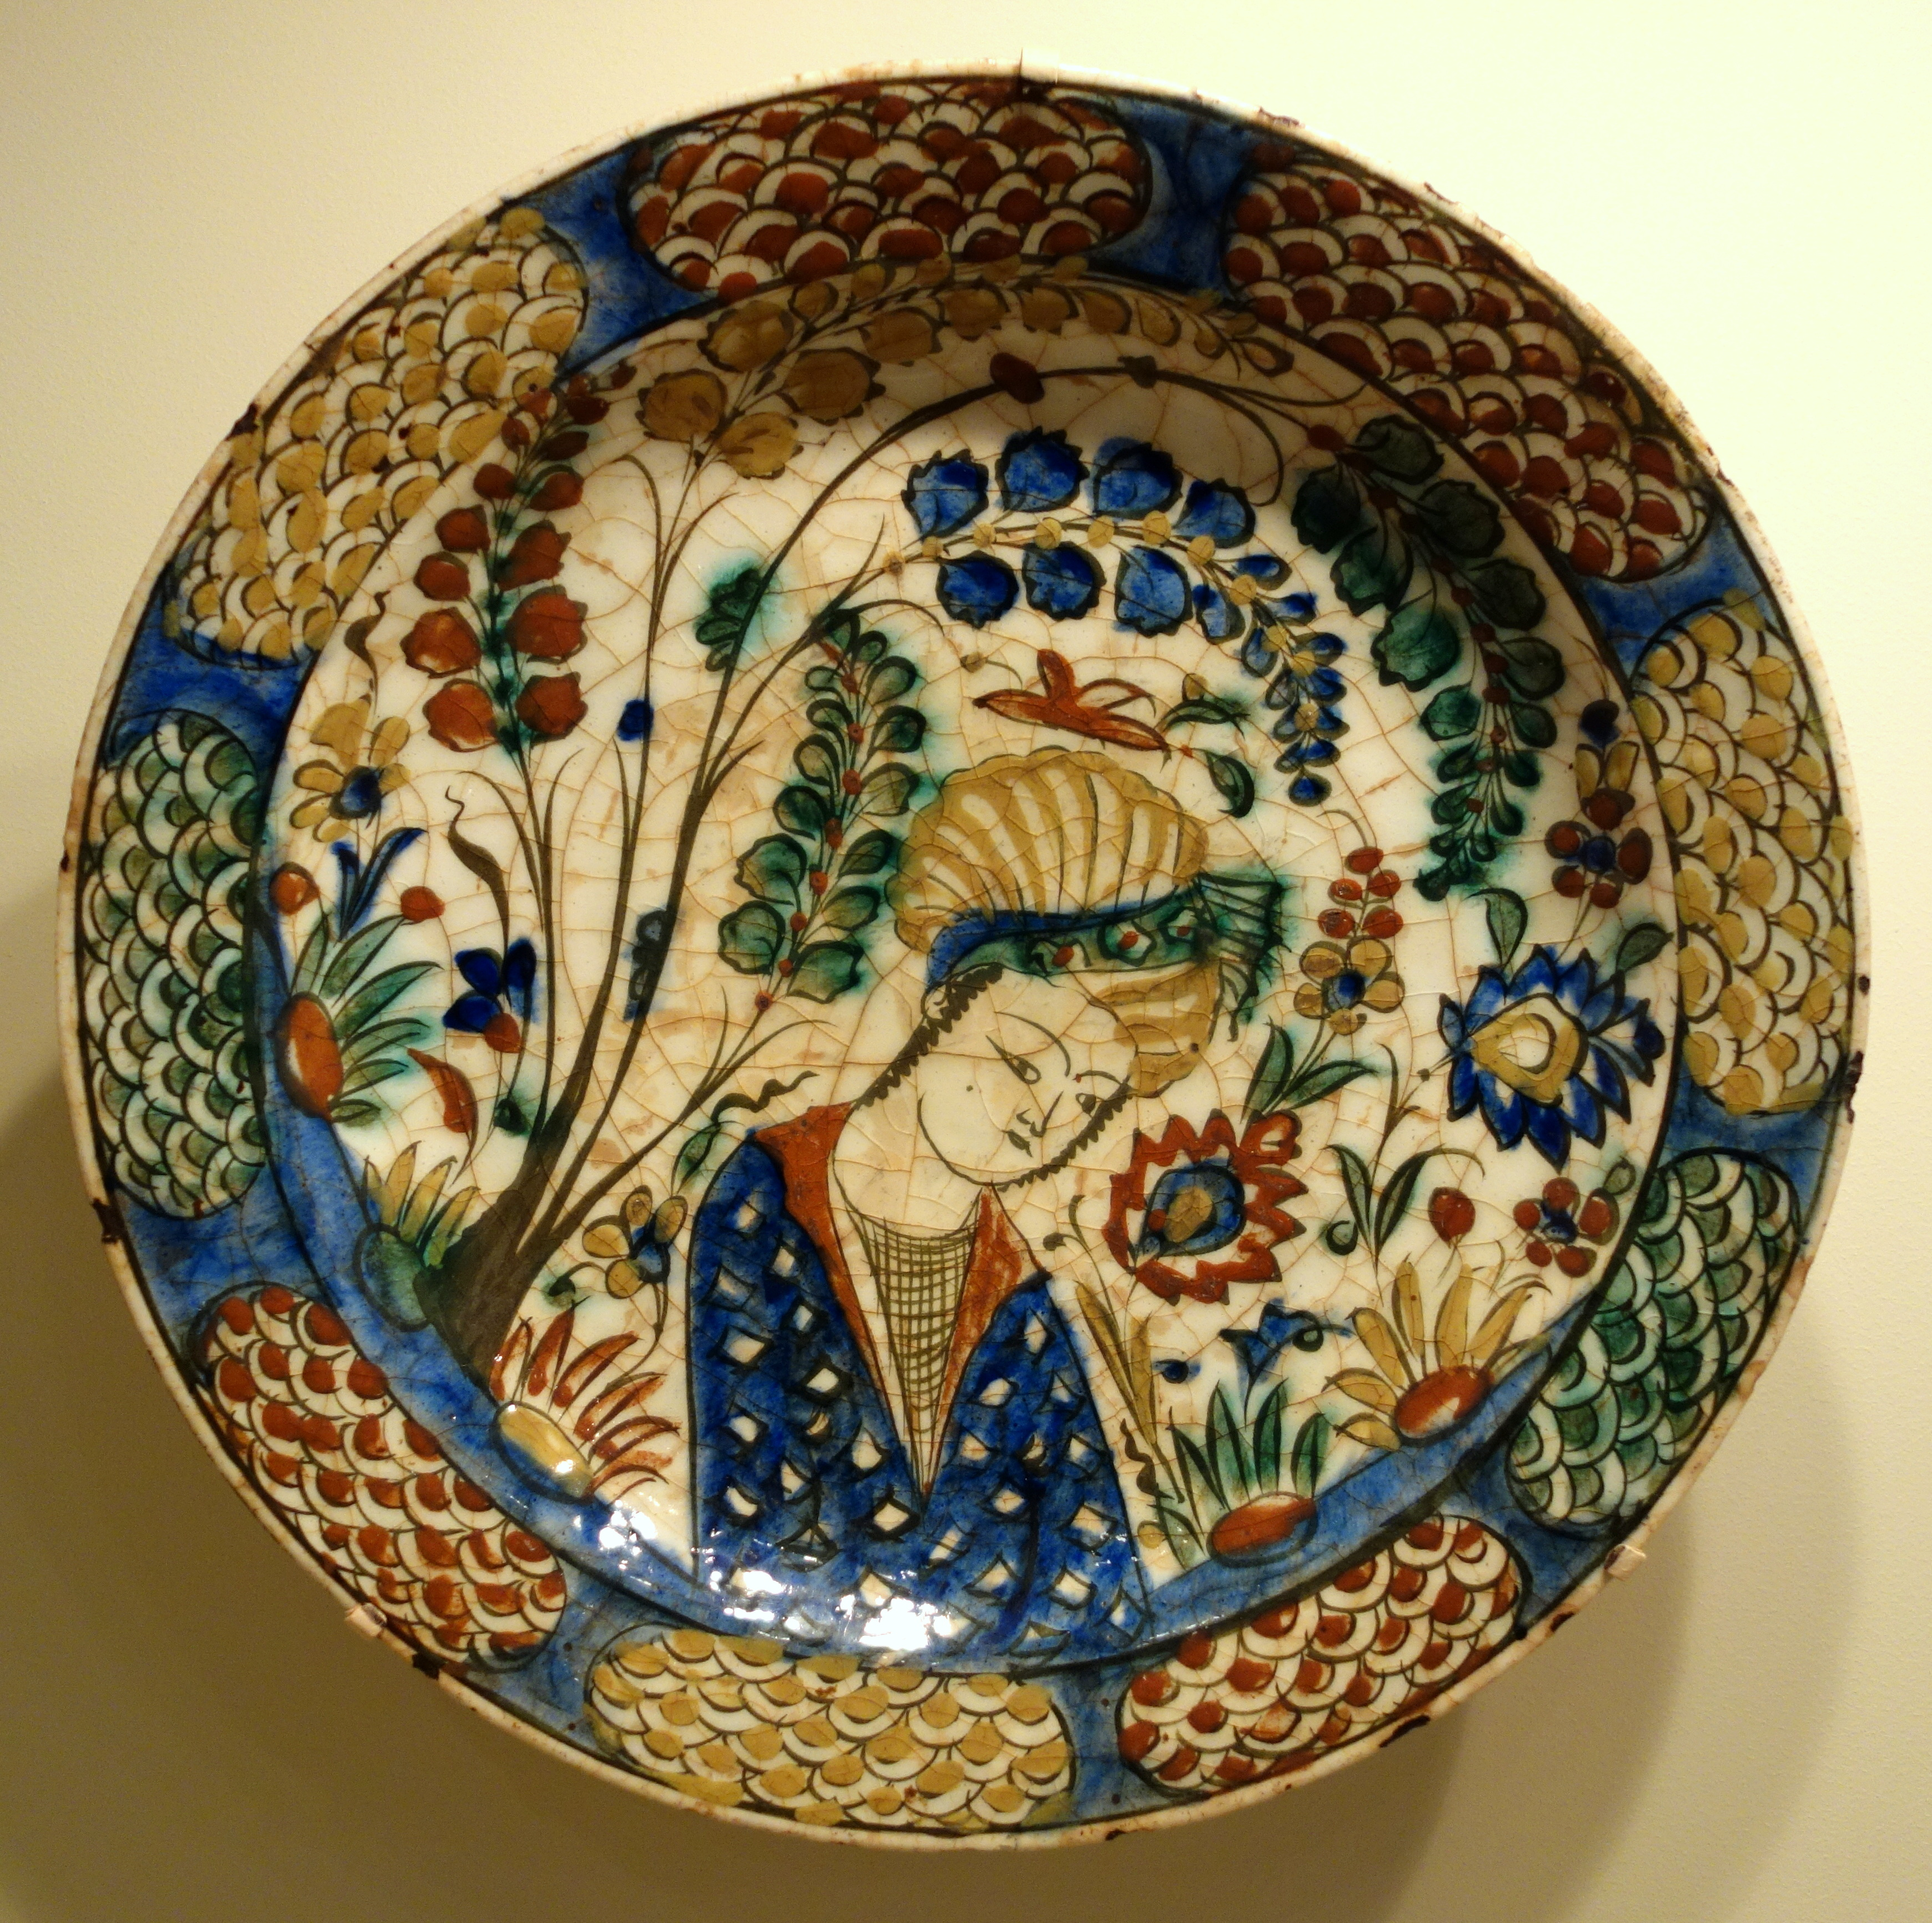 File:Dish with youth in landscape setting, Kubatchi ware